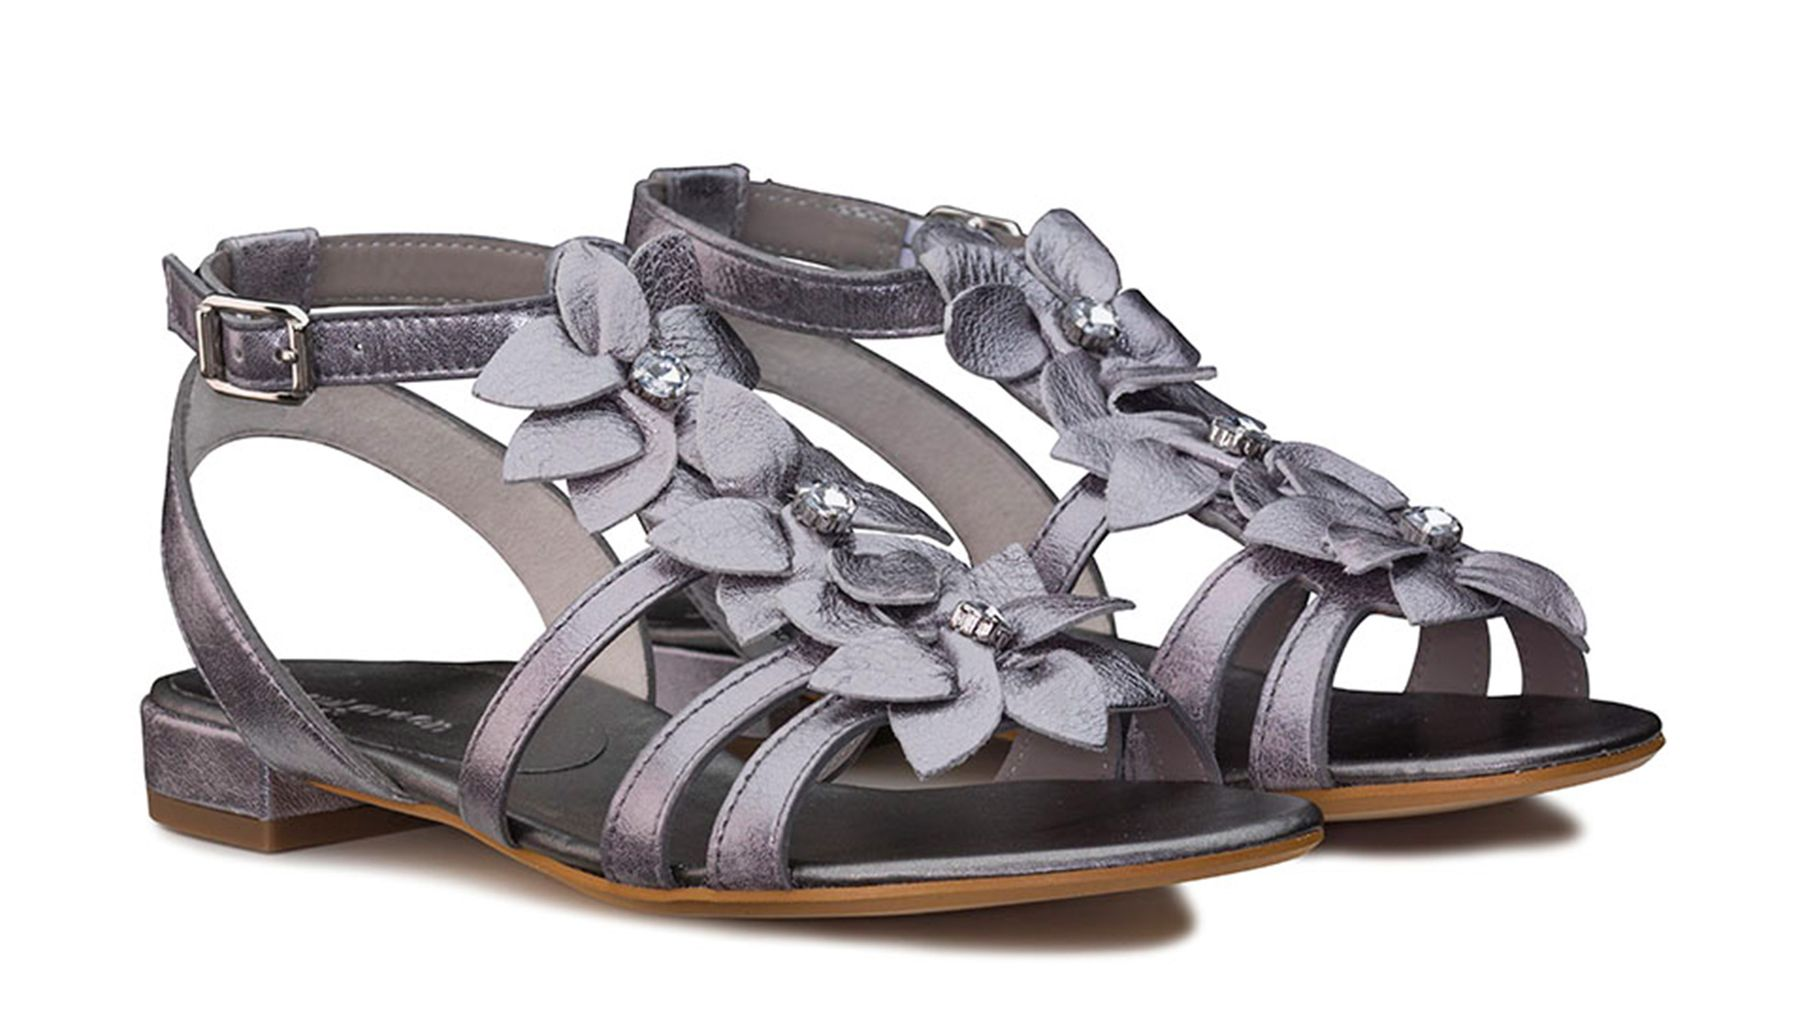 284010519f6 Playful Sandals with Flowers - Paul Green